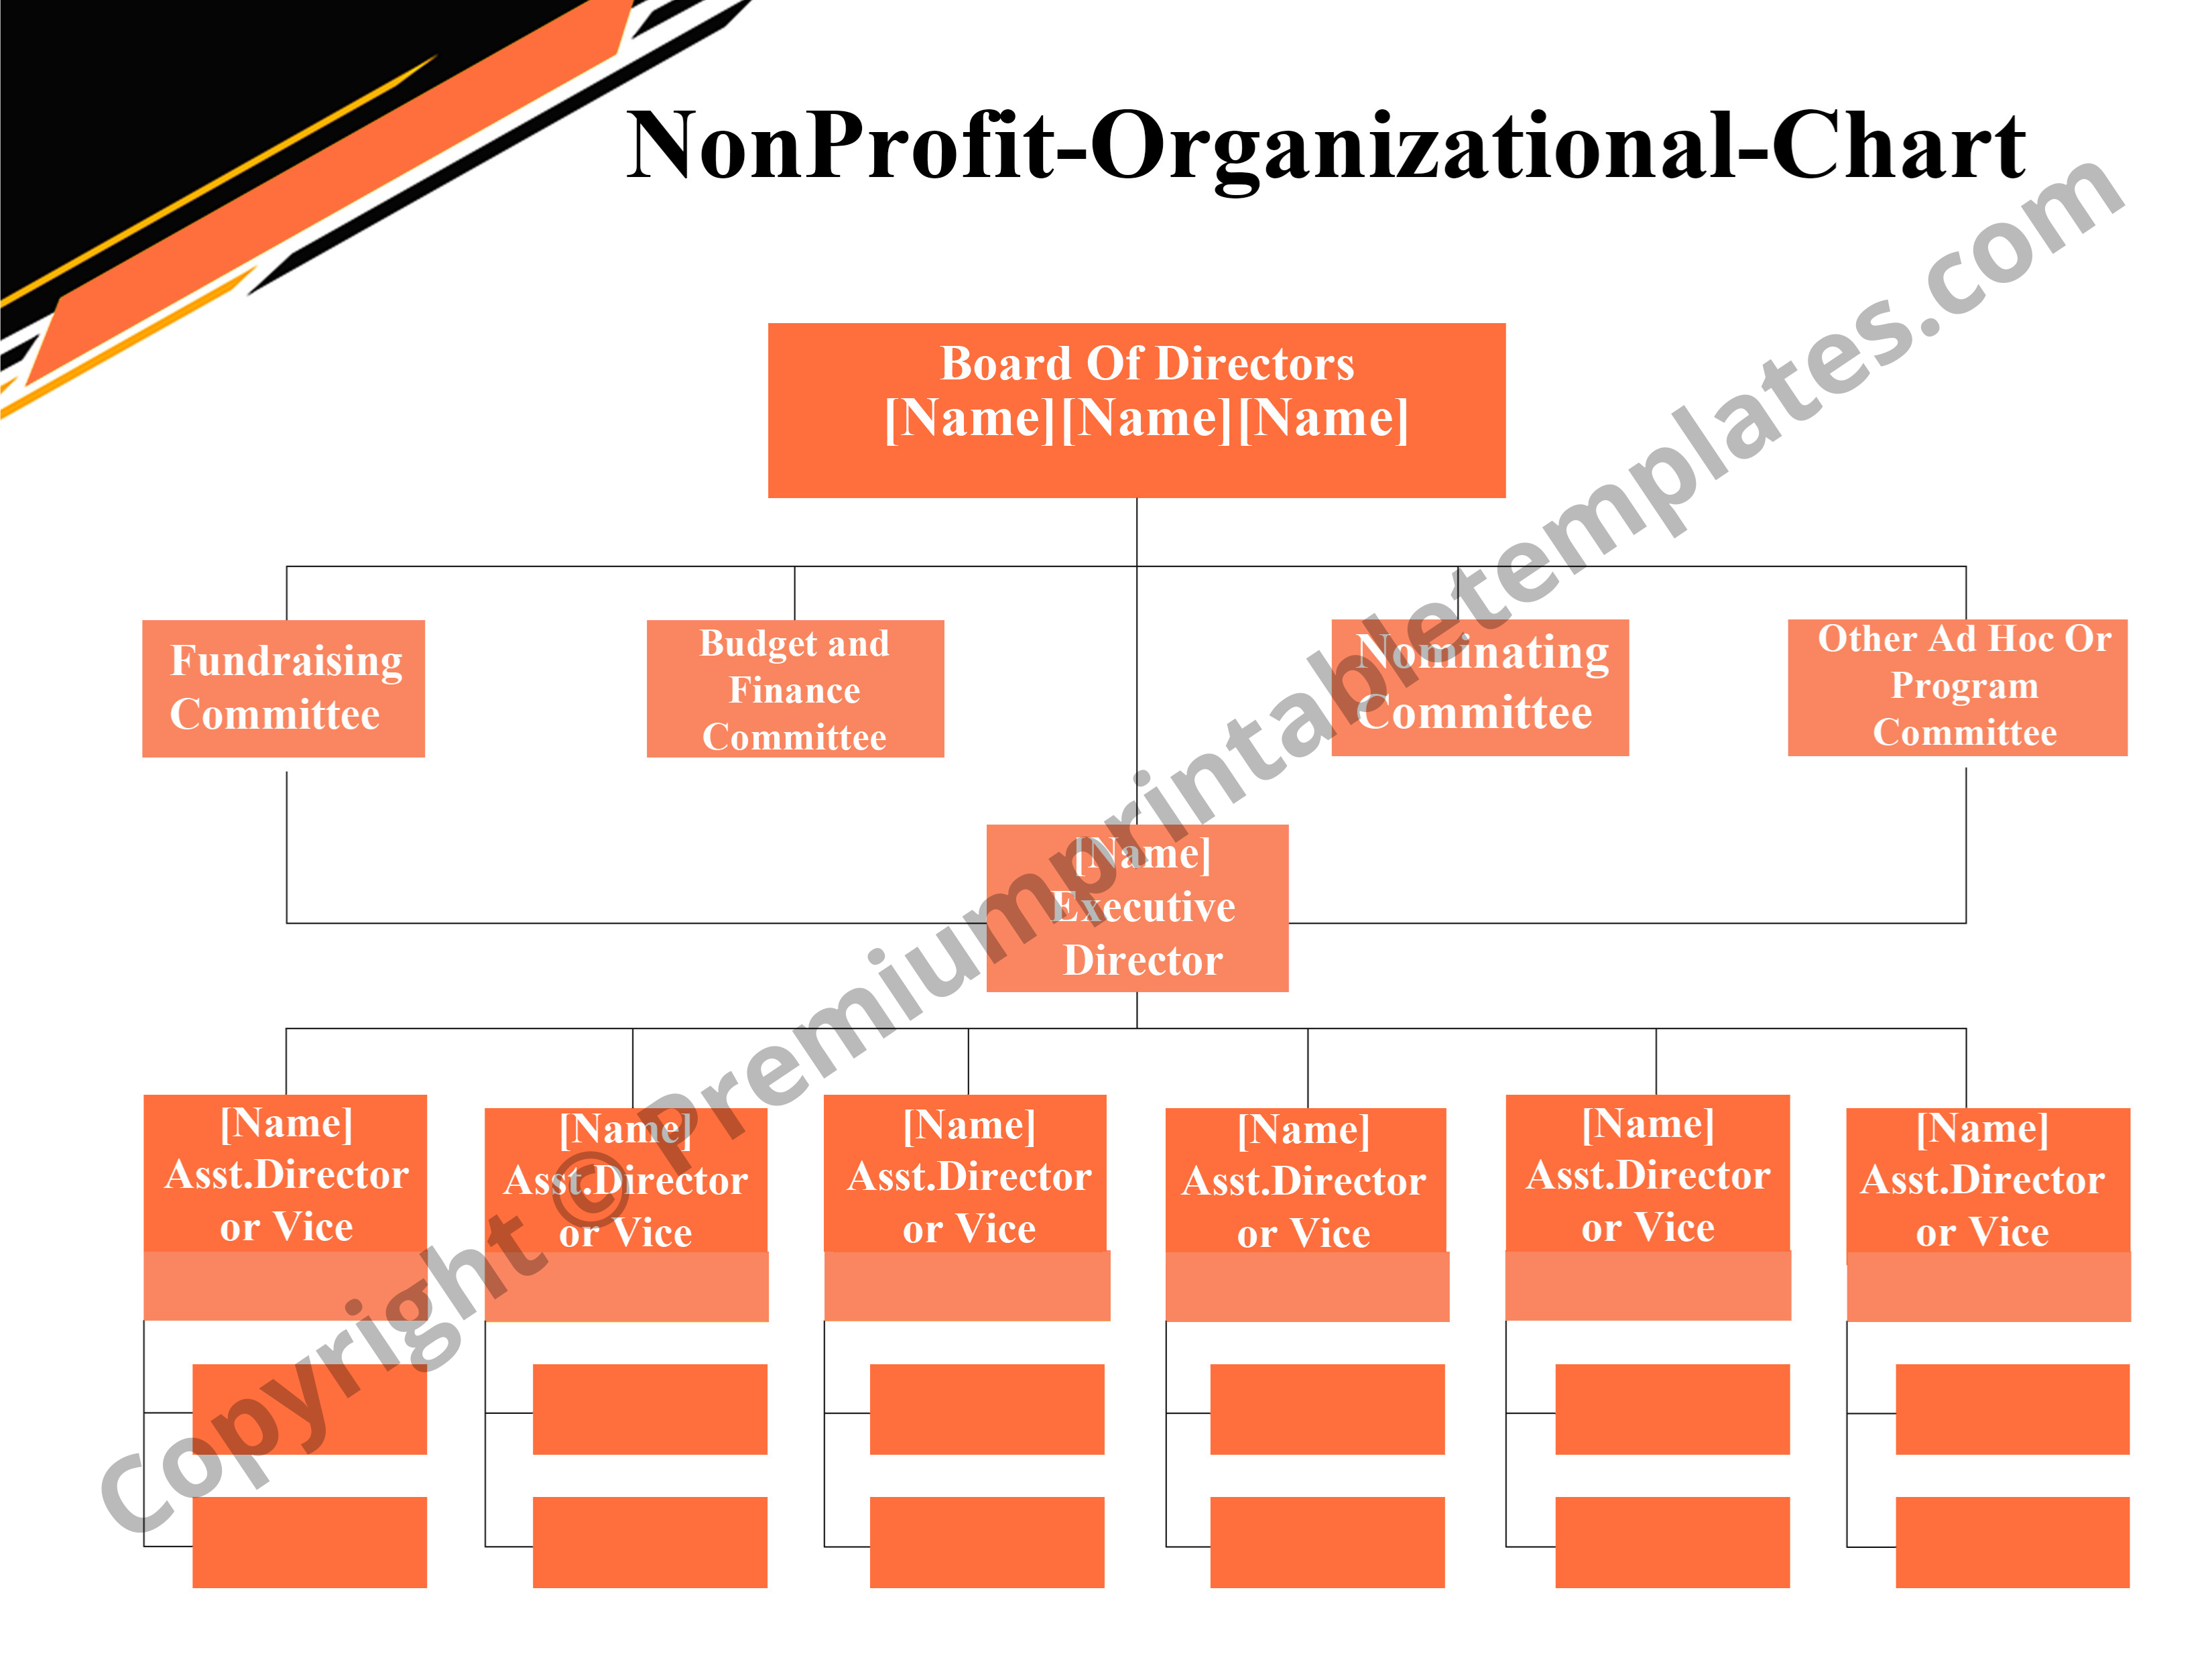 Non Profit Organizational Chart Pack Of 5 In 2020 Organizational Chart Non Profit Organization Chart